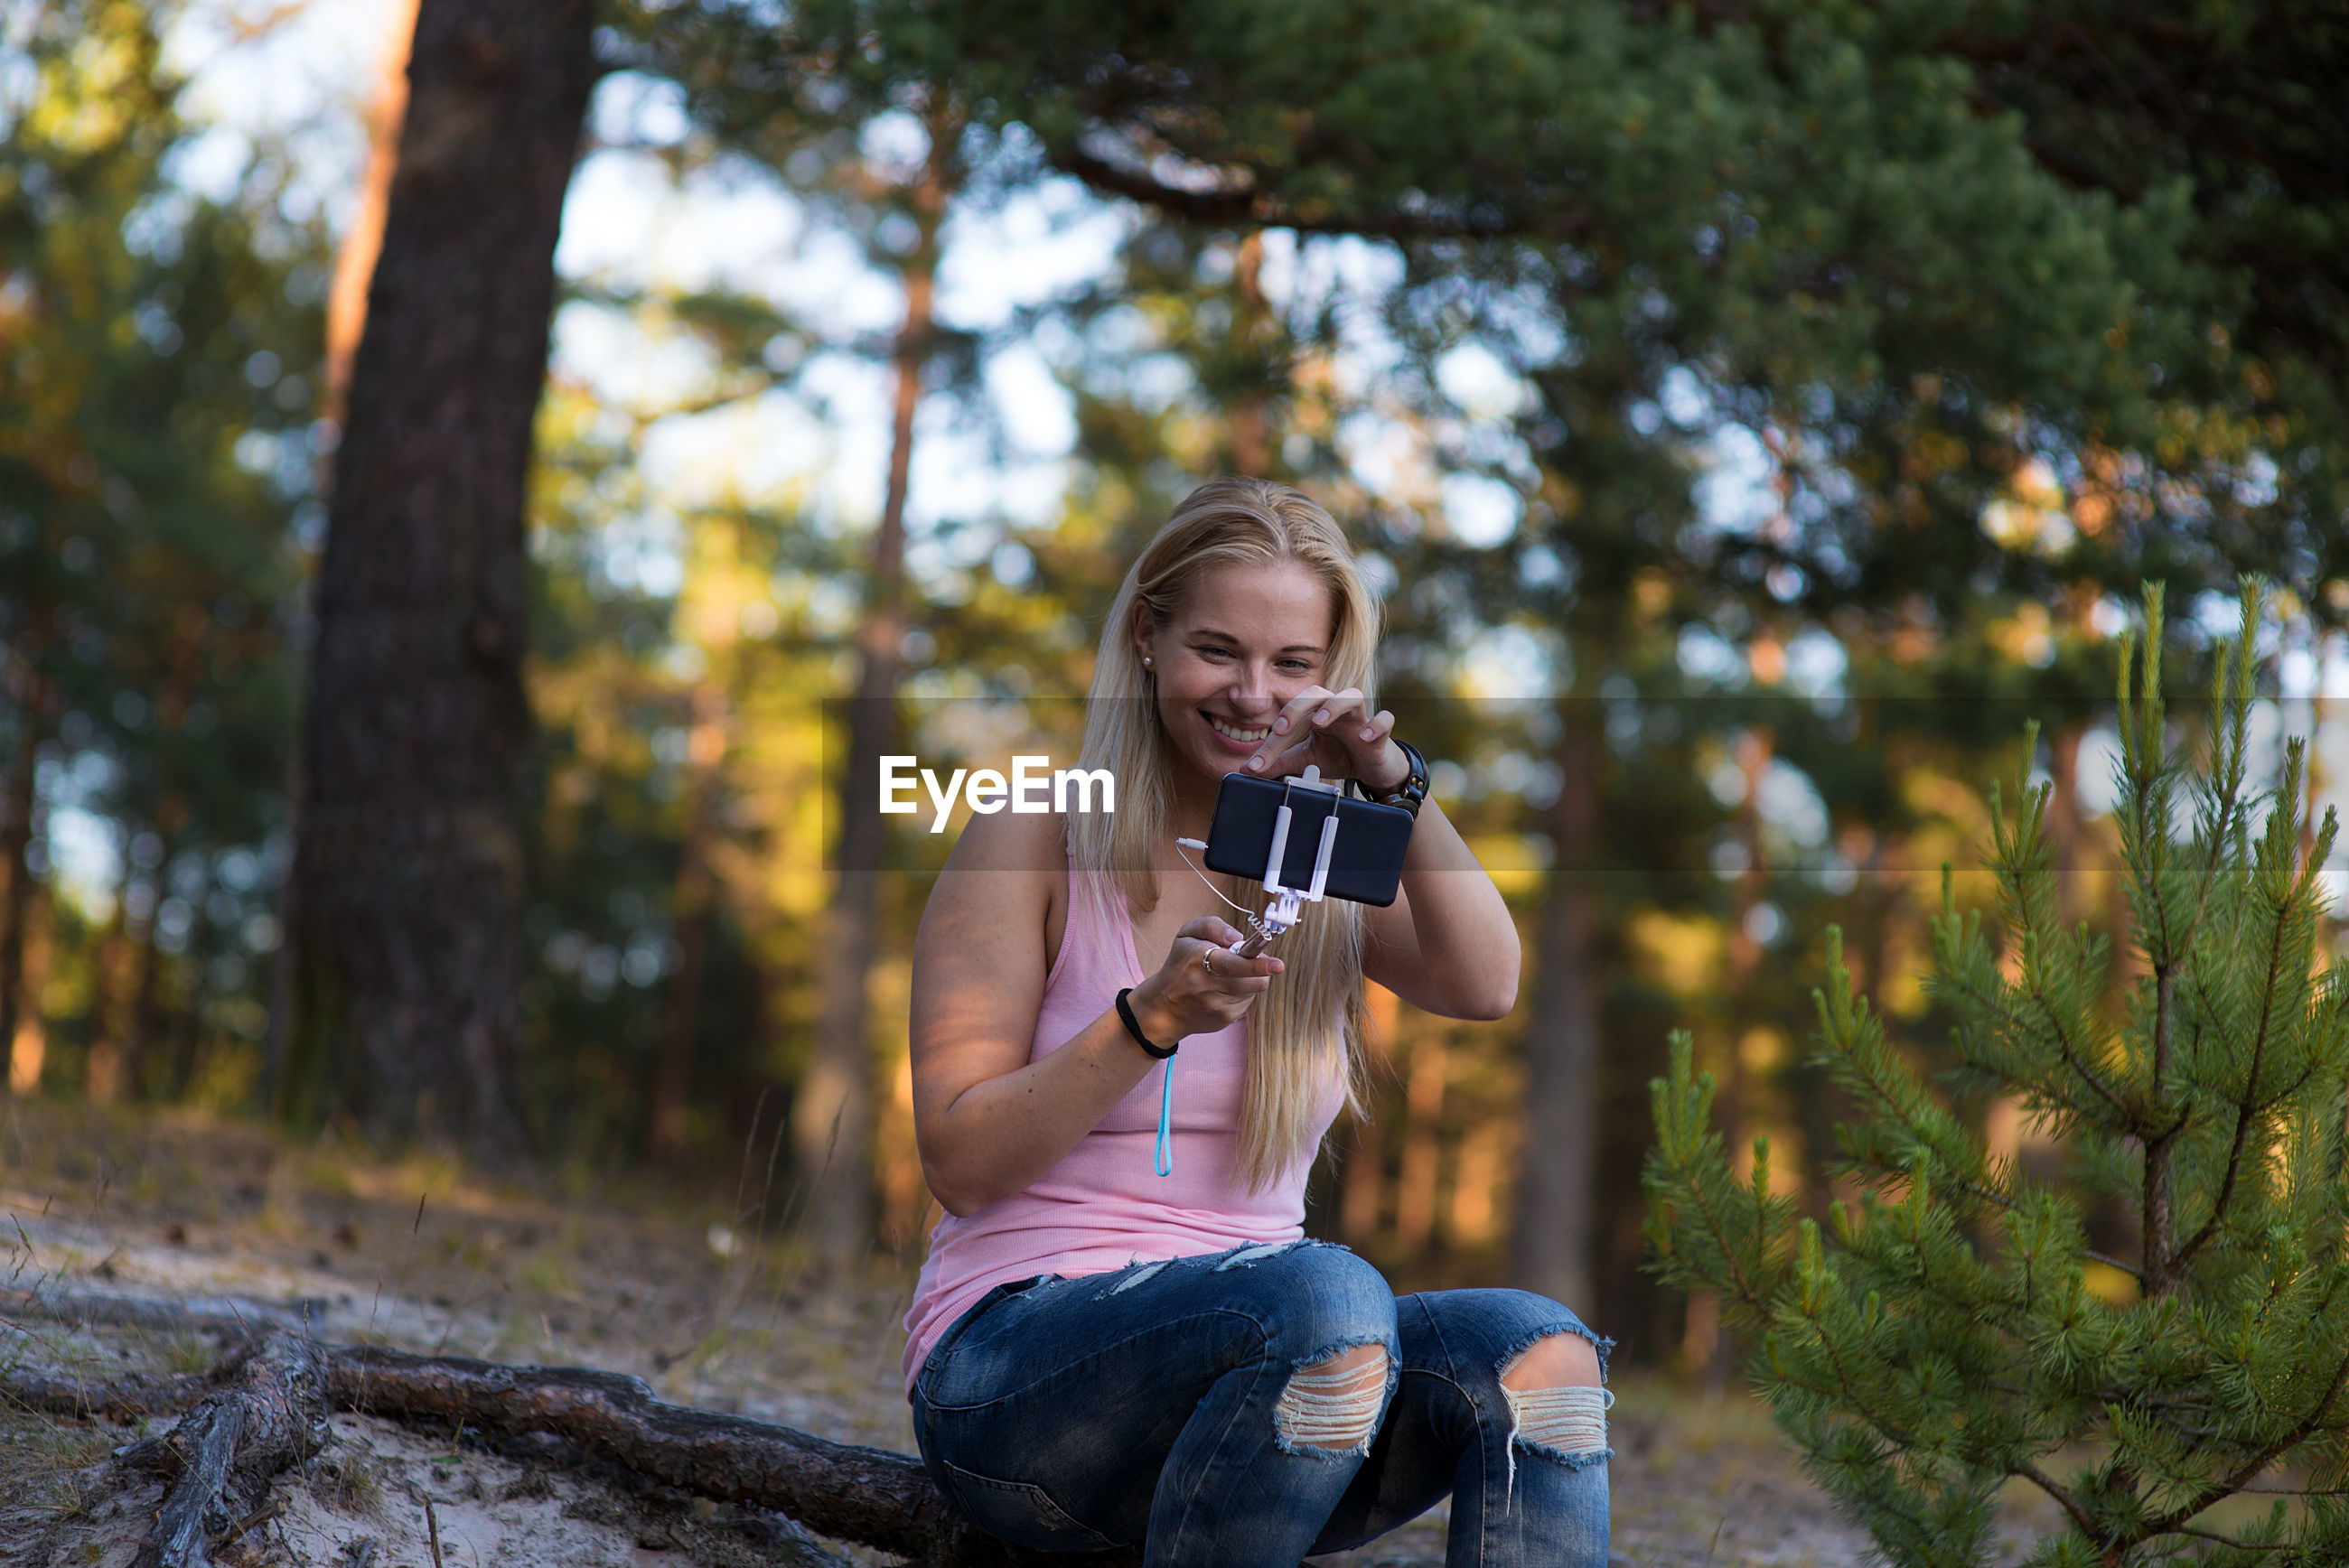 Young woman using mobile phone in forest